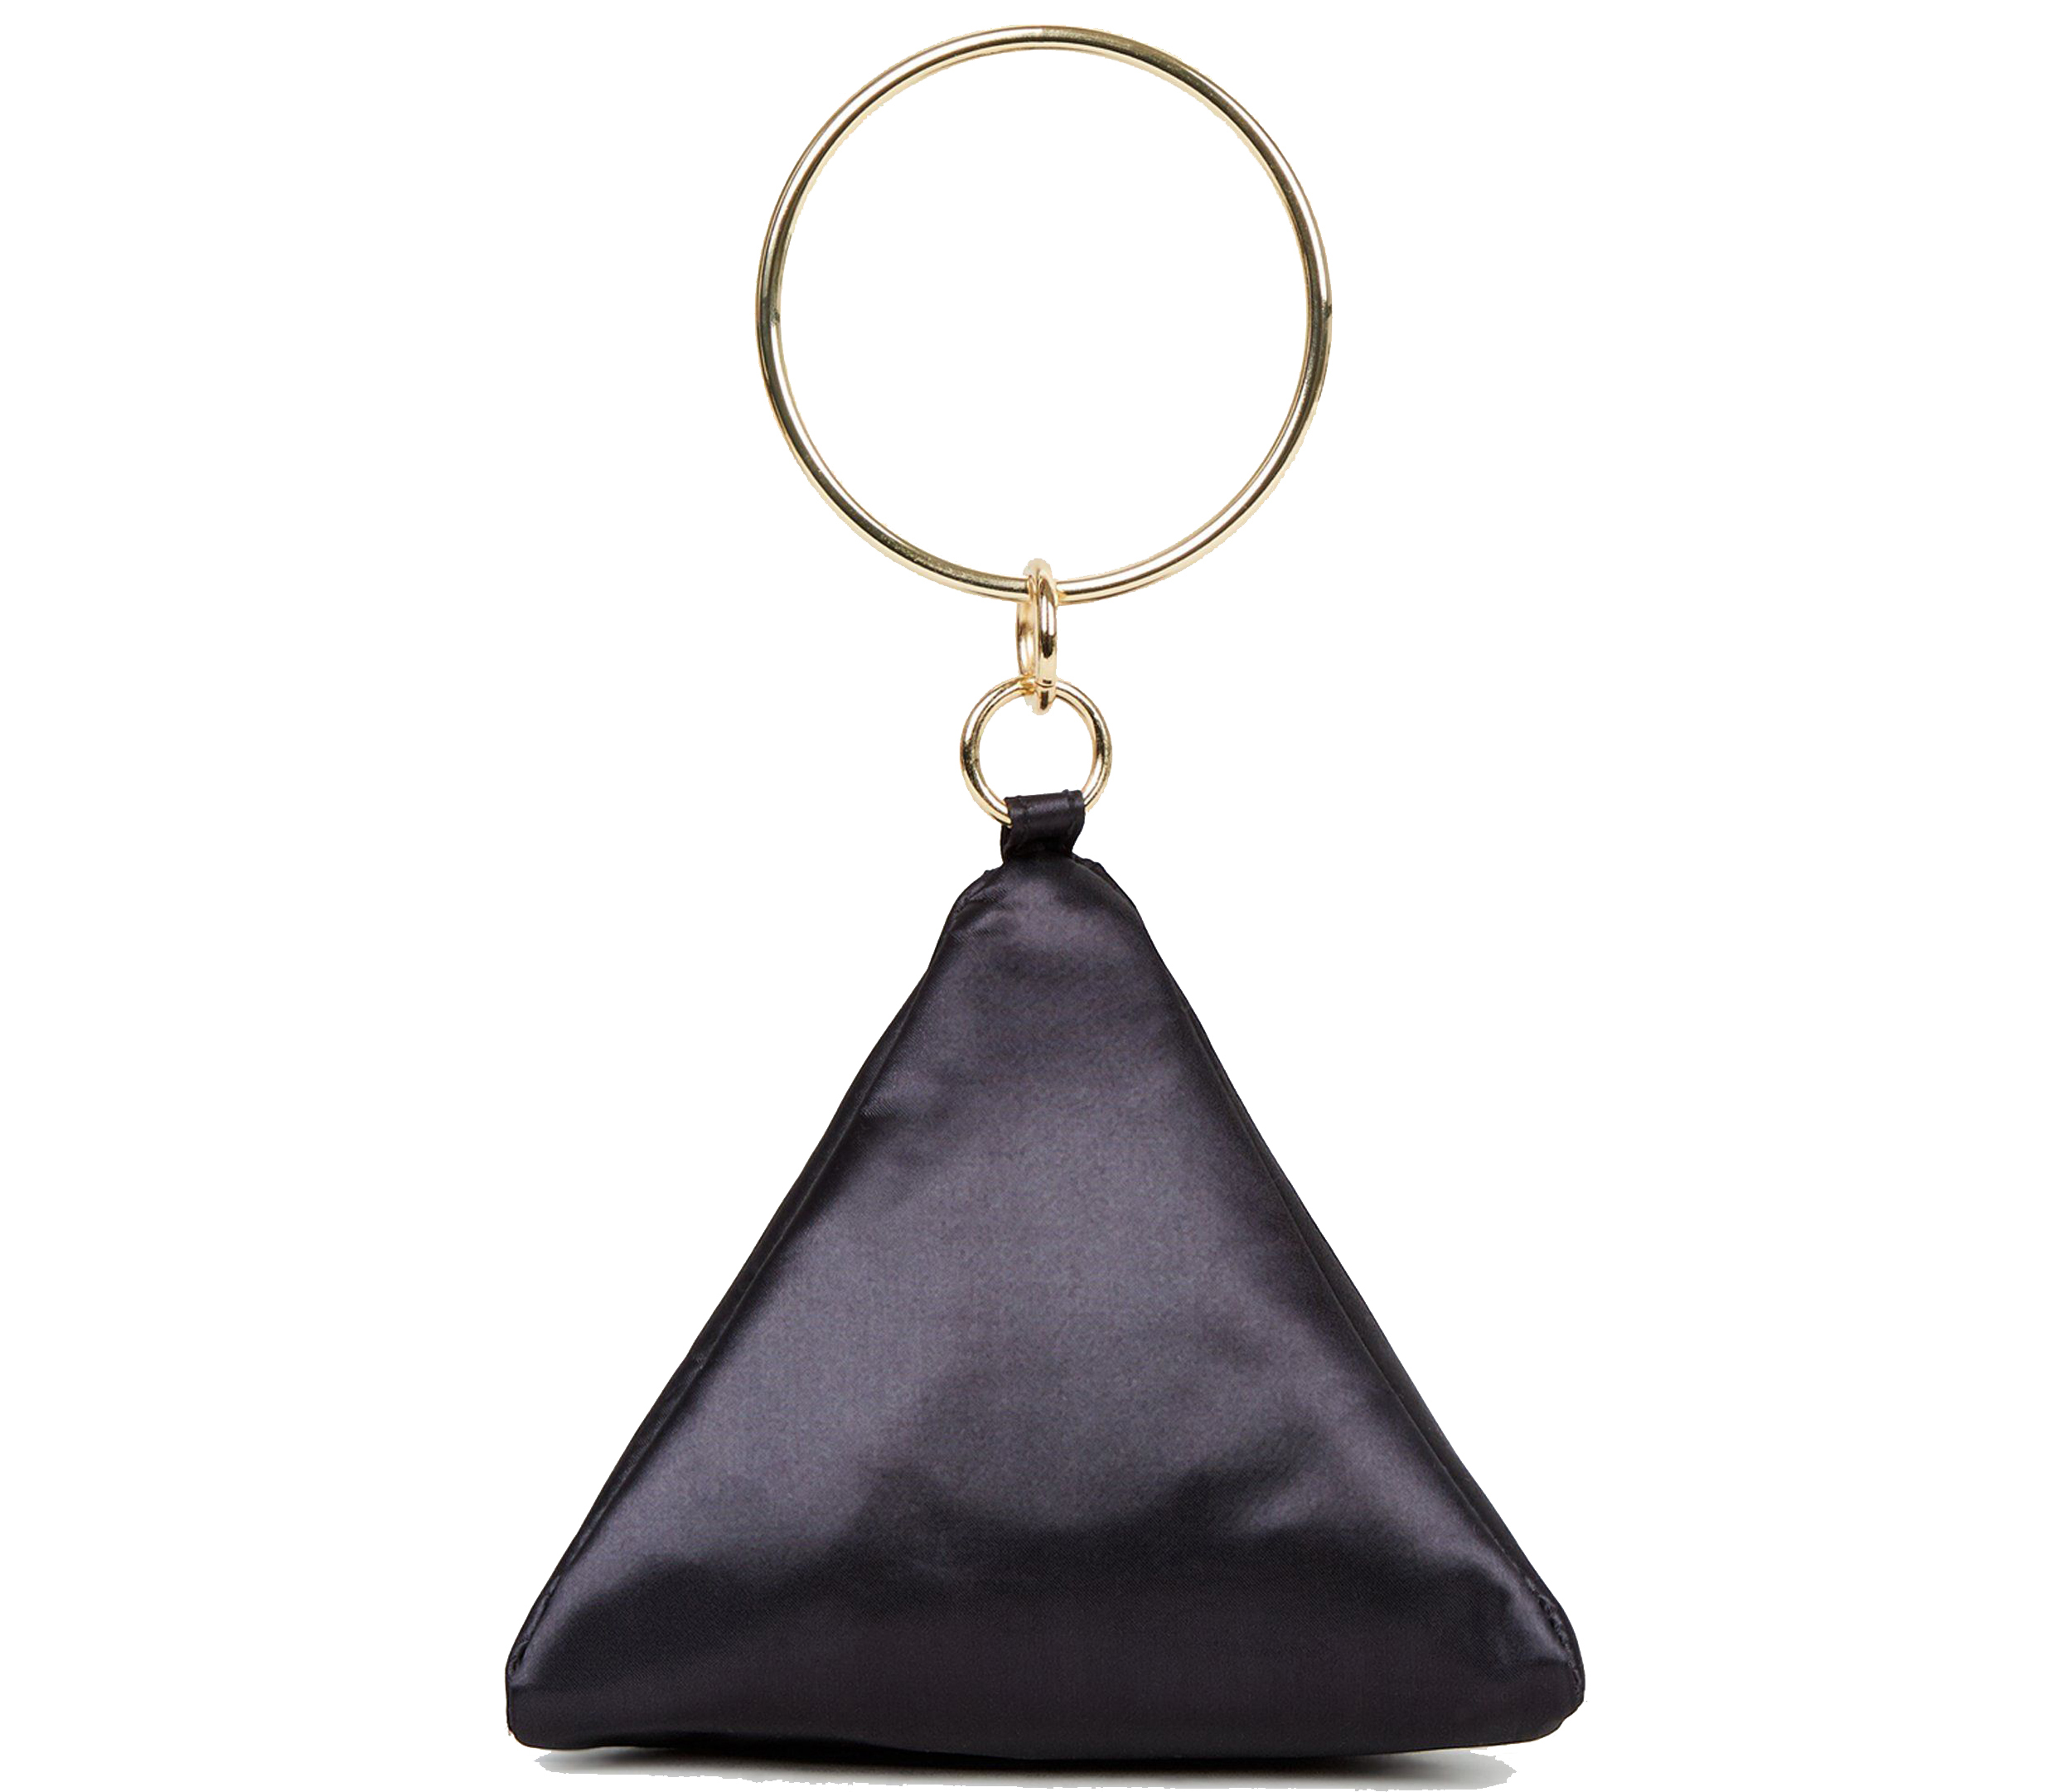 New Look Black Satin Triangle Clutch Bag